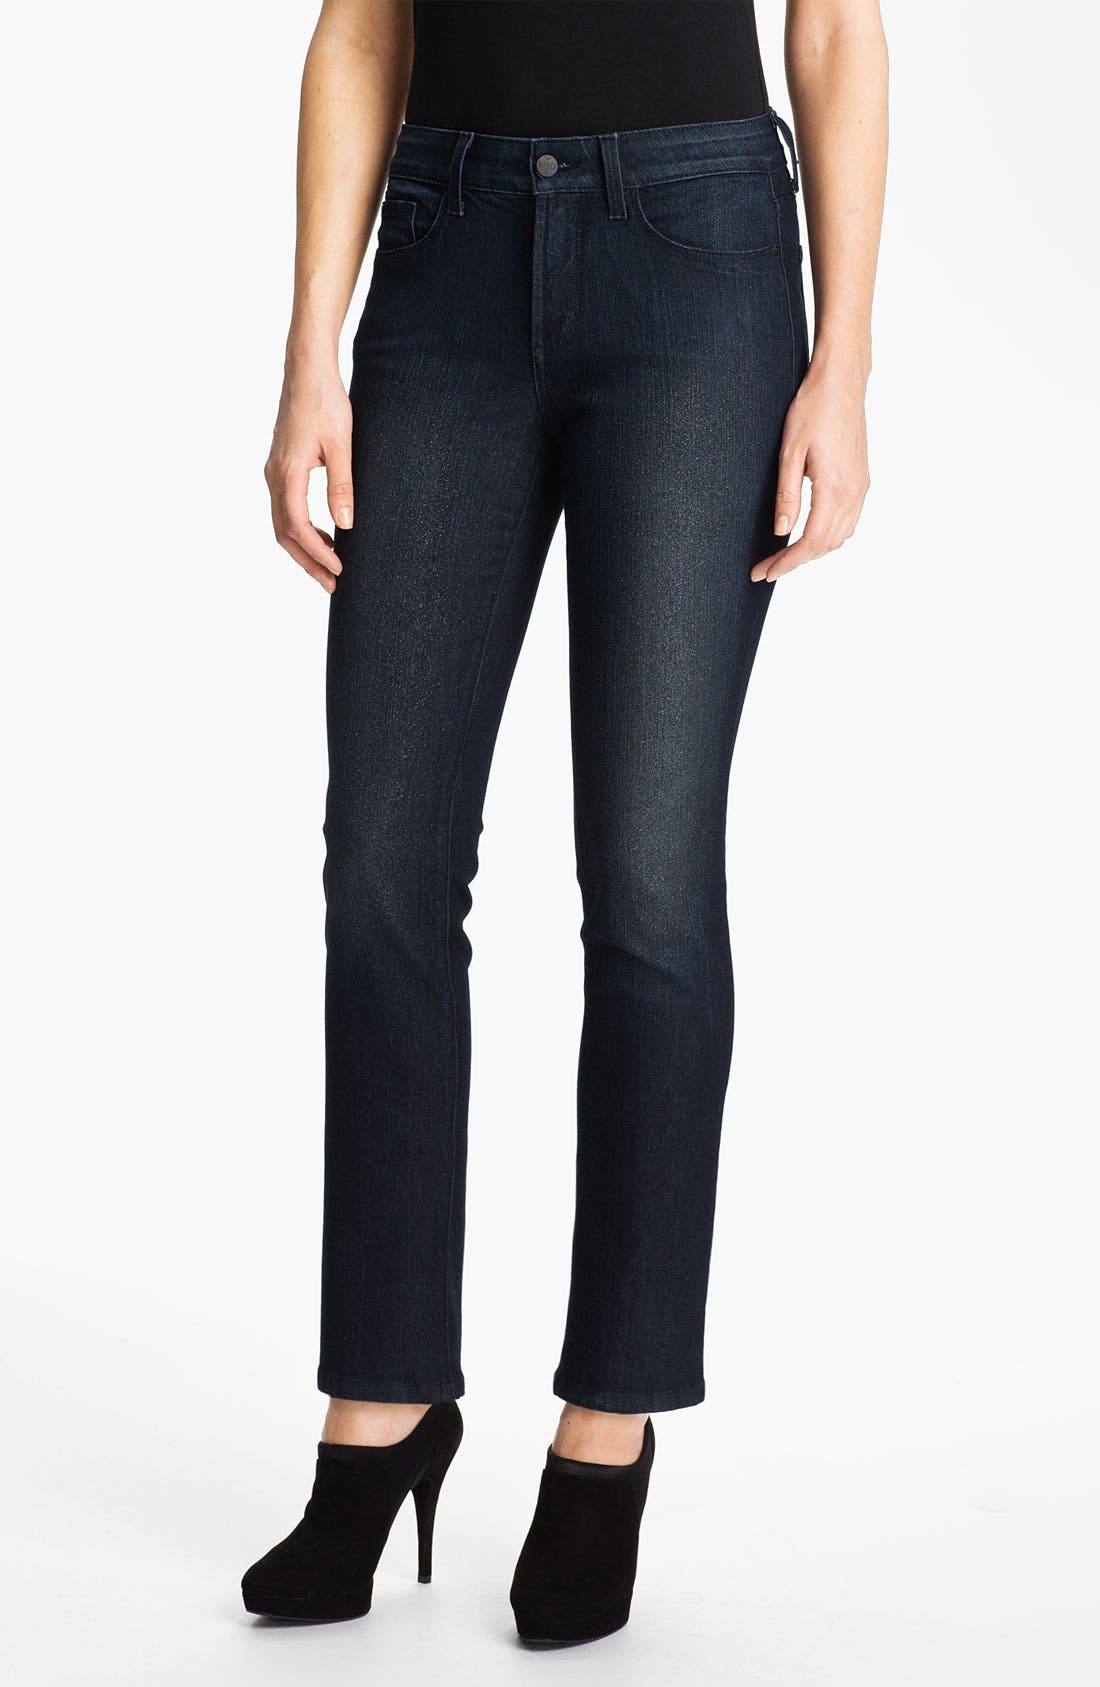 Alternate Image 1 Selected - NYDJ 'Sheri' Stretch Skinny Jeans (Petite)